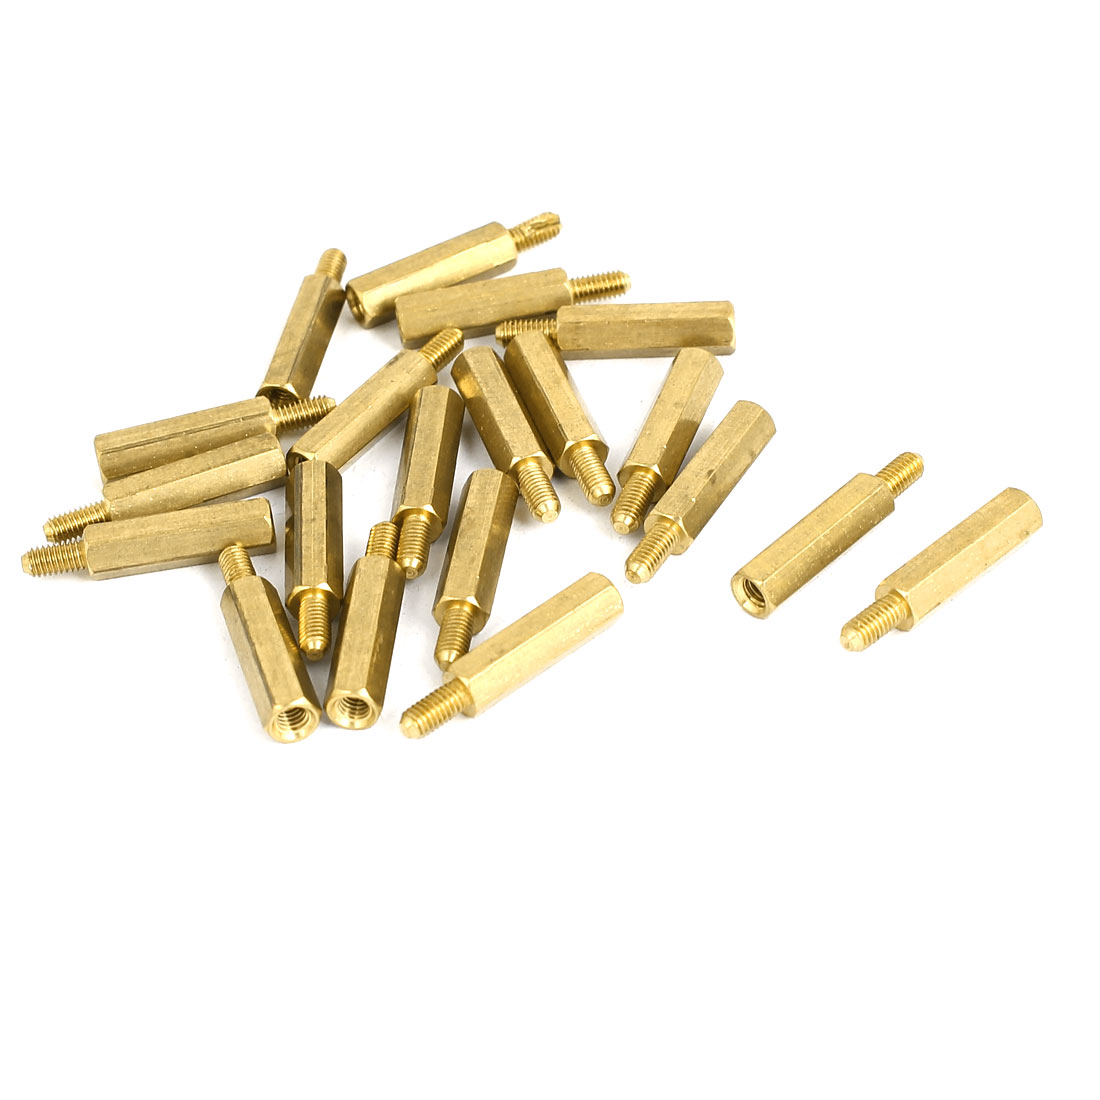 M3 Female x Male Brass Hexagonal Pillar Standoff Spacer Screws Bolt 17+6mm 20pcs